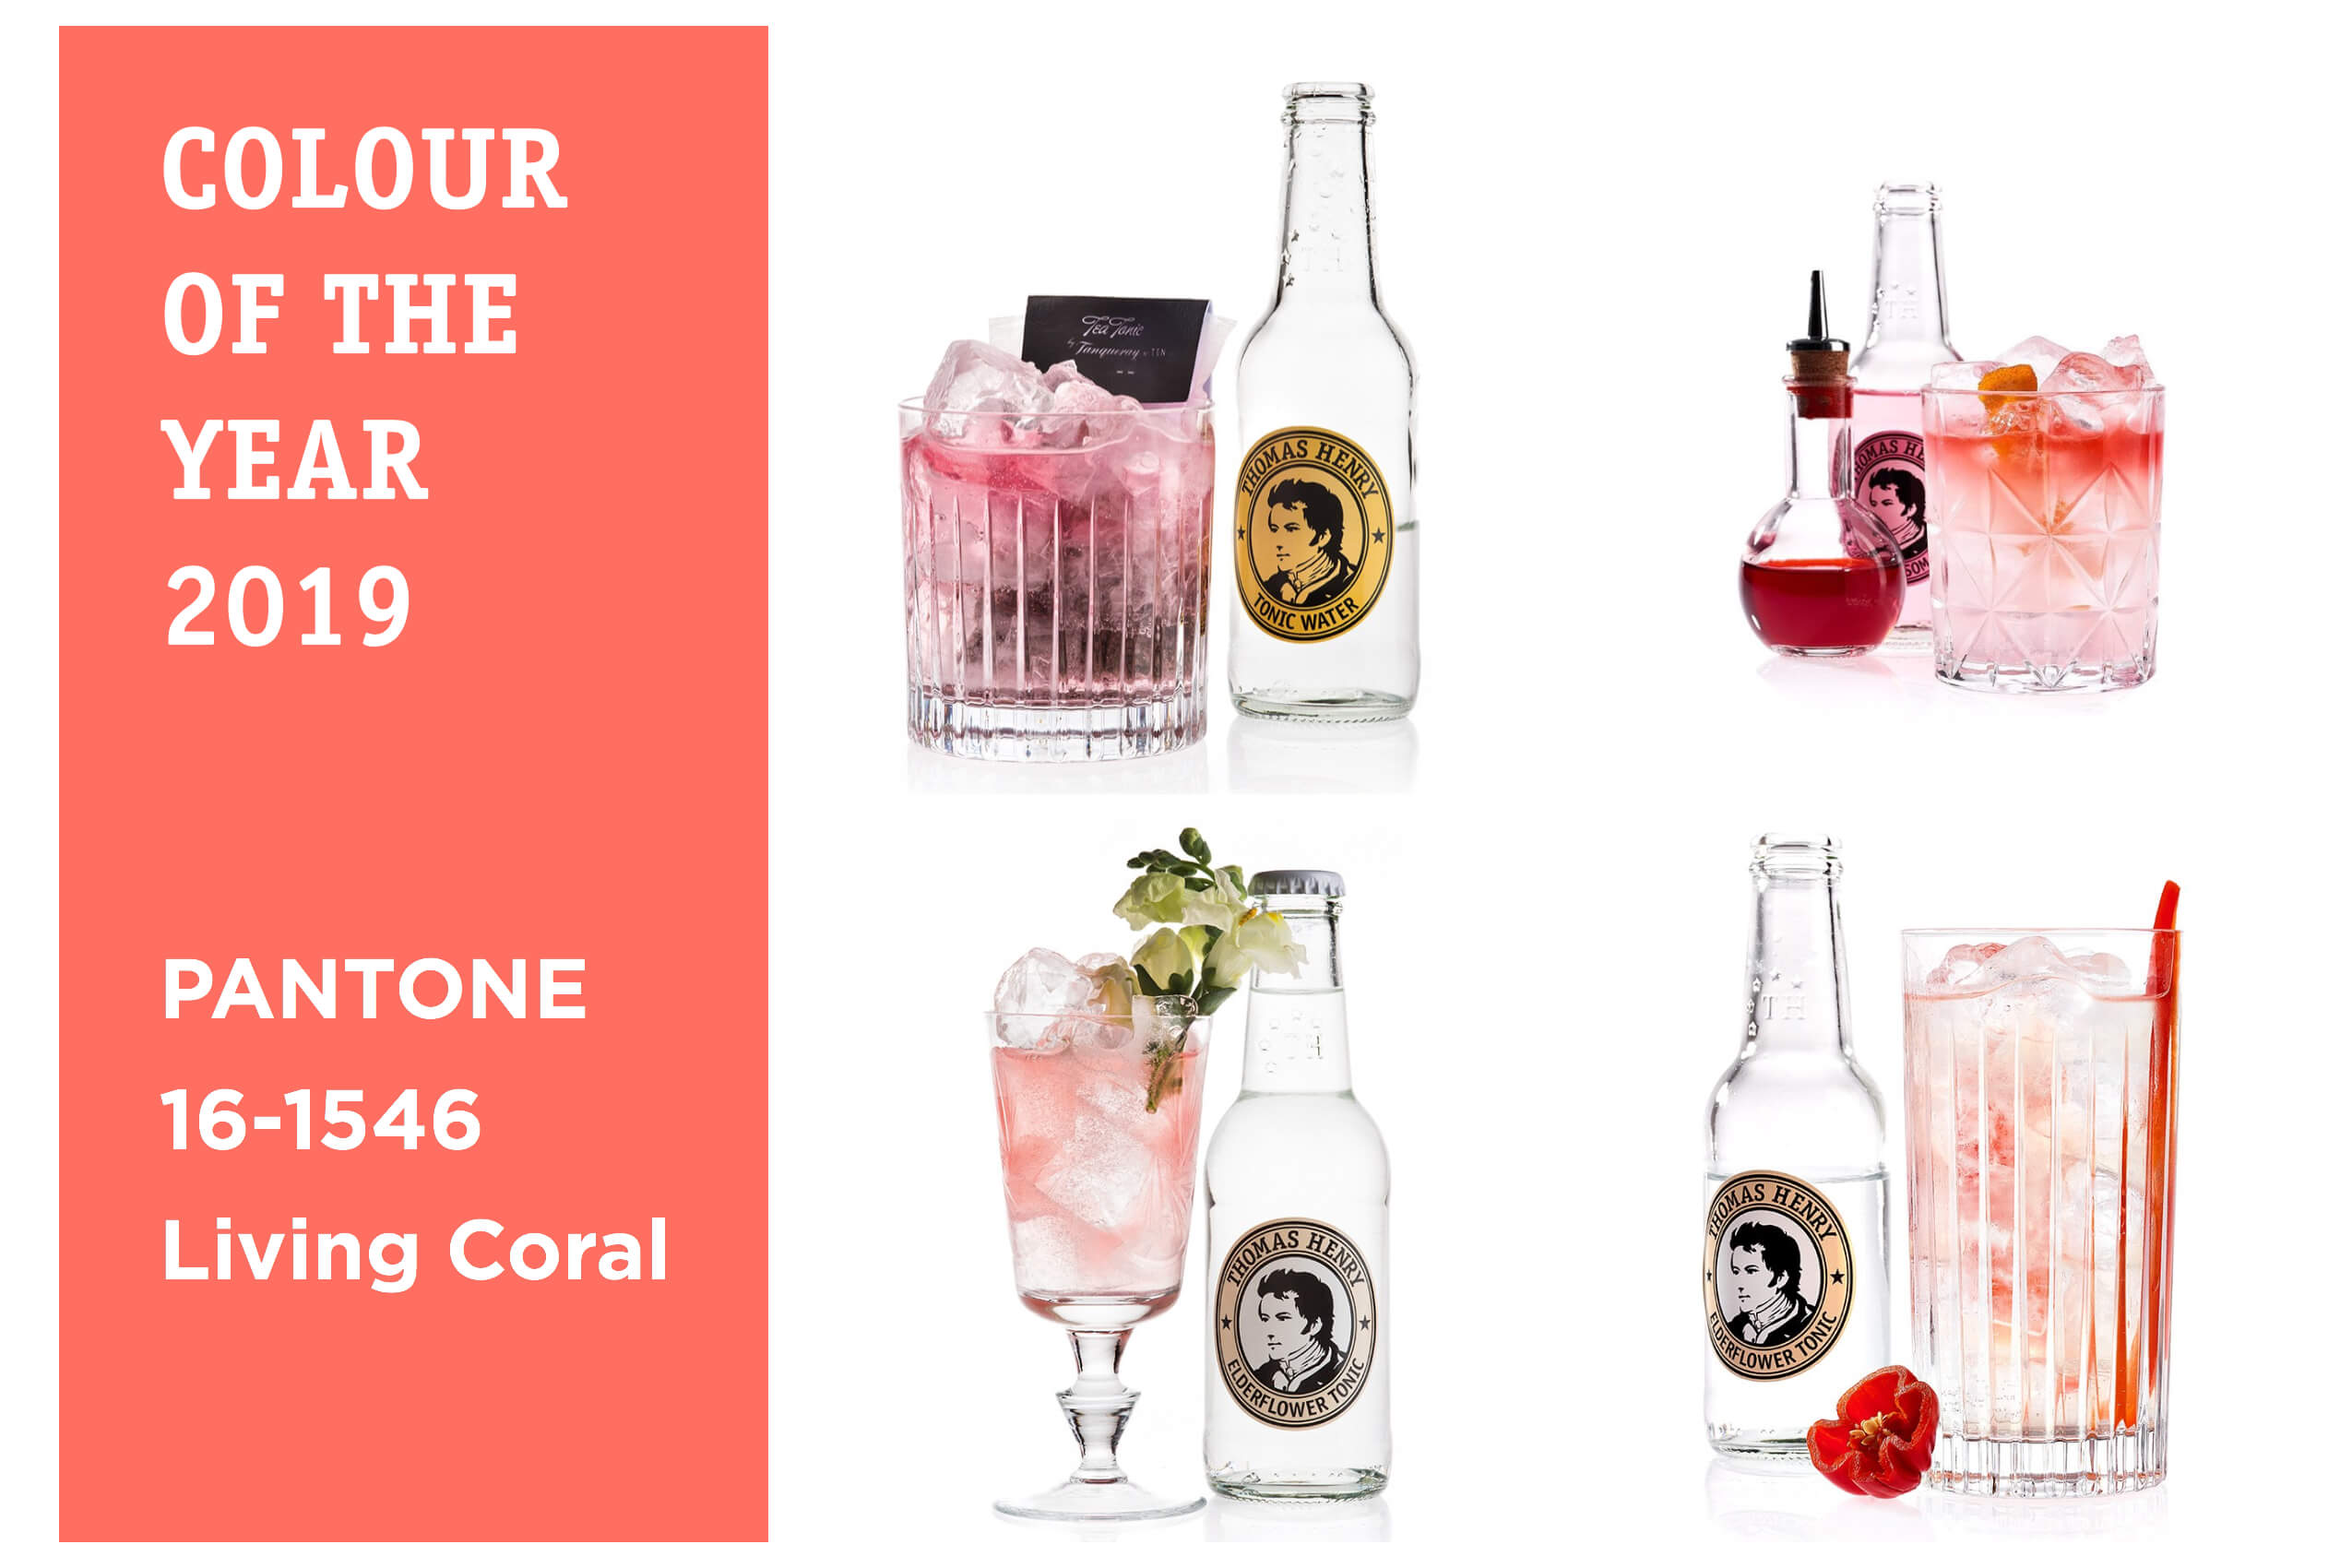 Thomas Henry Drink in der Farbe des Jahres Living Coral